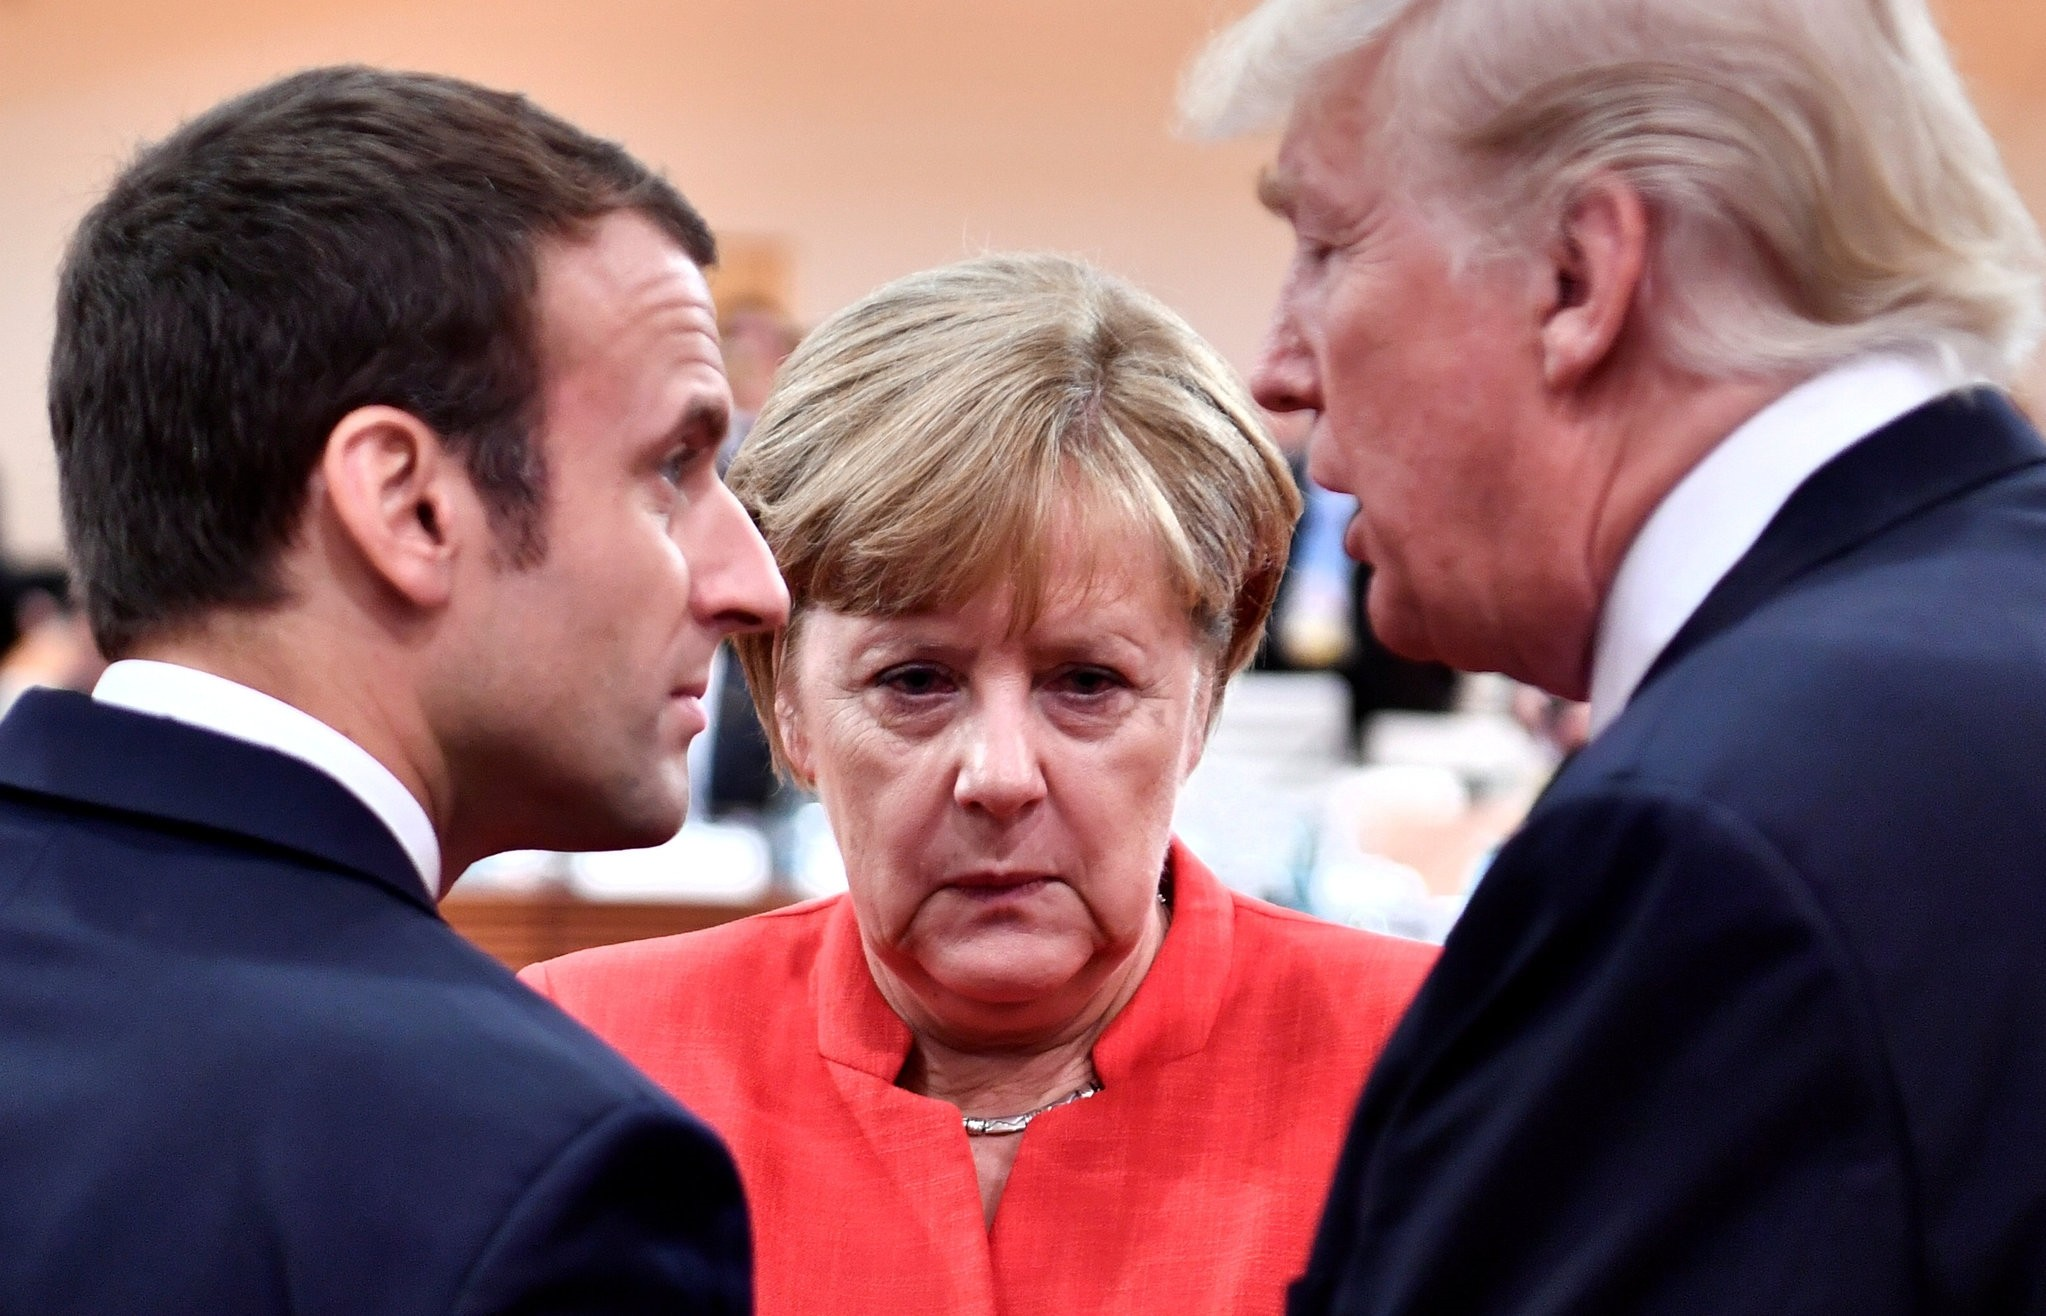 Macron, Merkel and Trump confer at the start of the first working session of the G20 meeting in Hamburg, July 7, 2017. (REUTERS Photo)